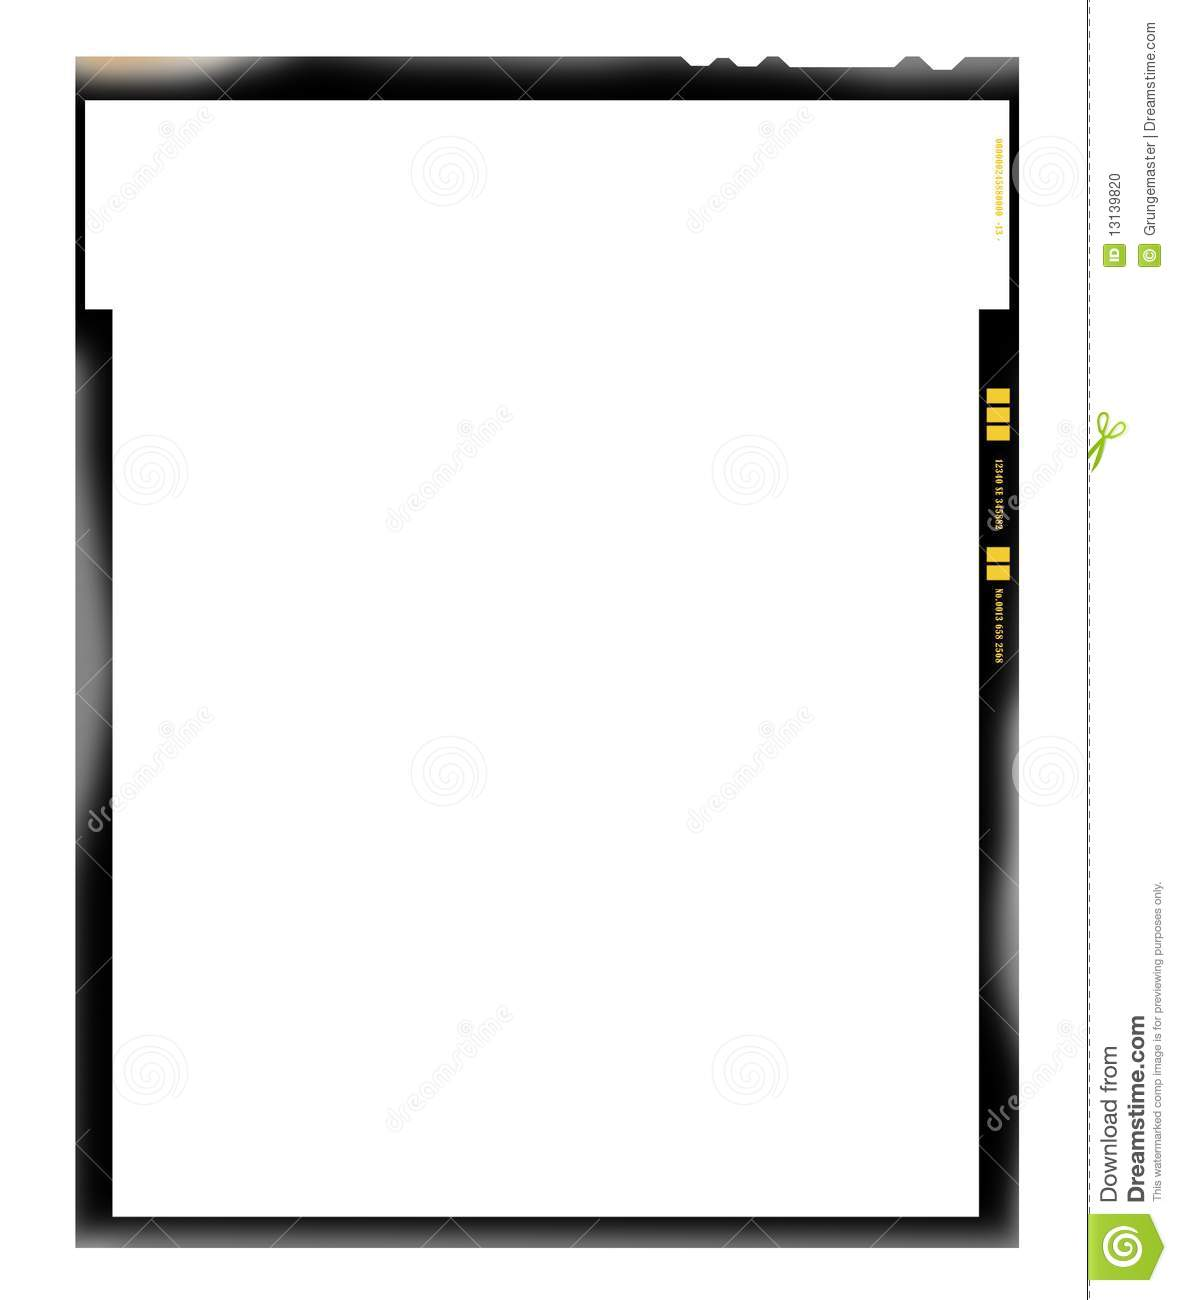 Film Sheet Negative, Picture Frame Stock Photo - Image of background ...